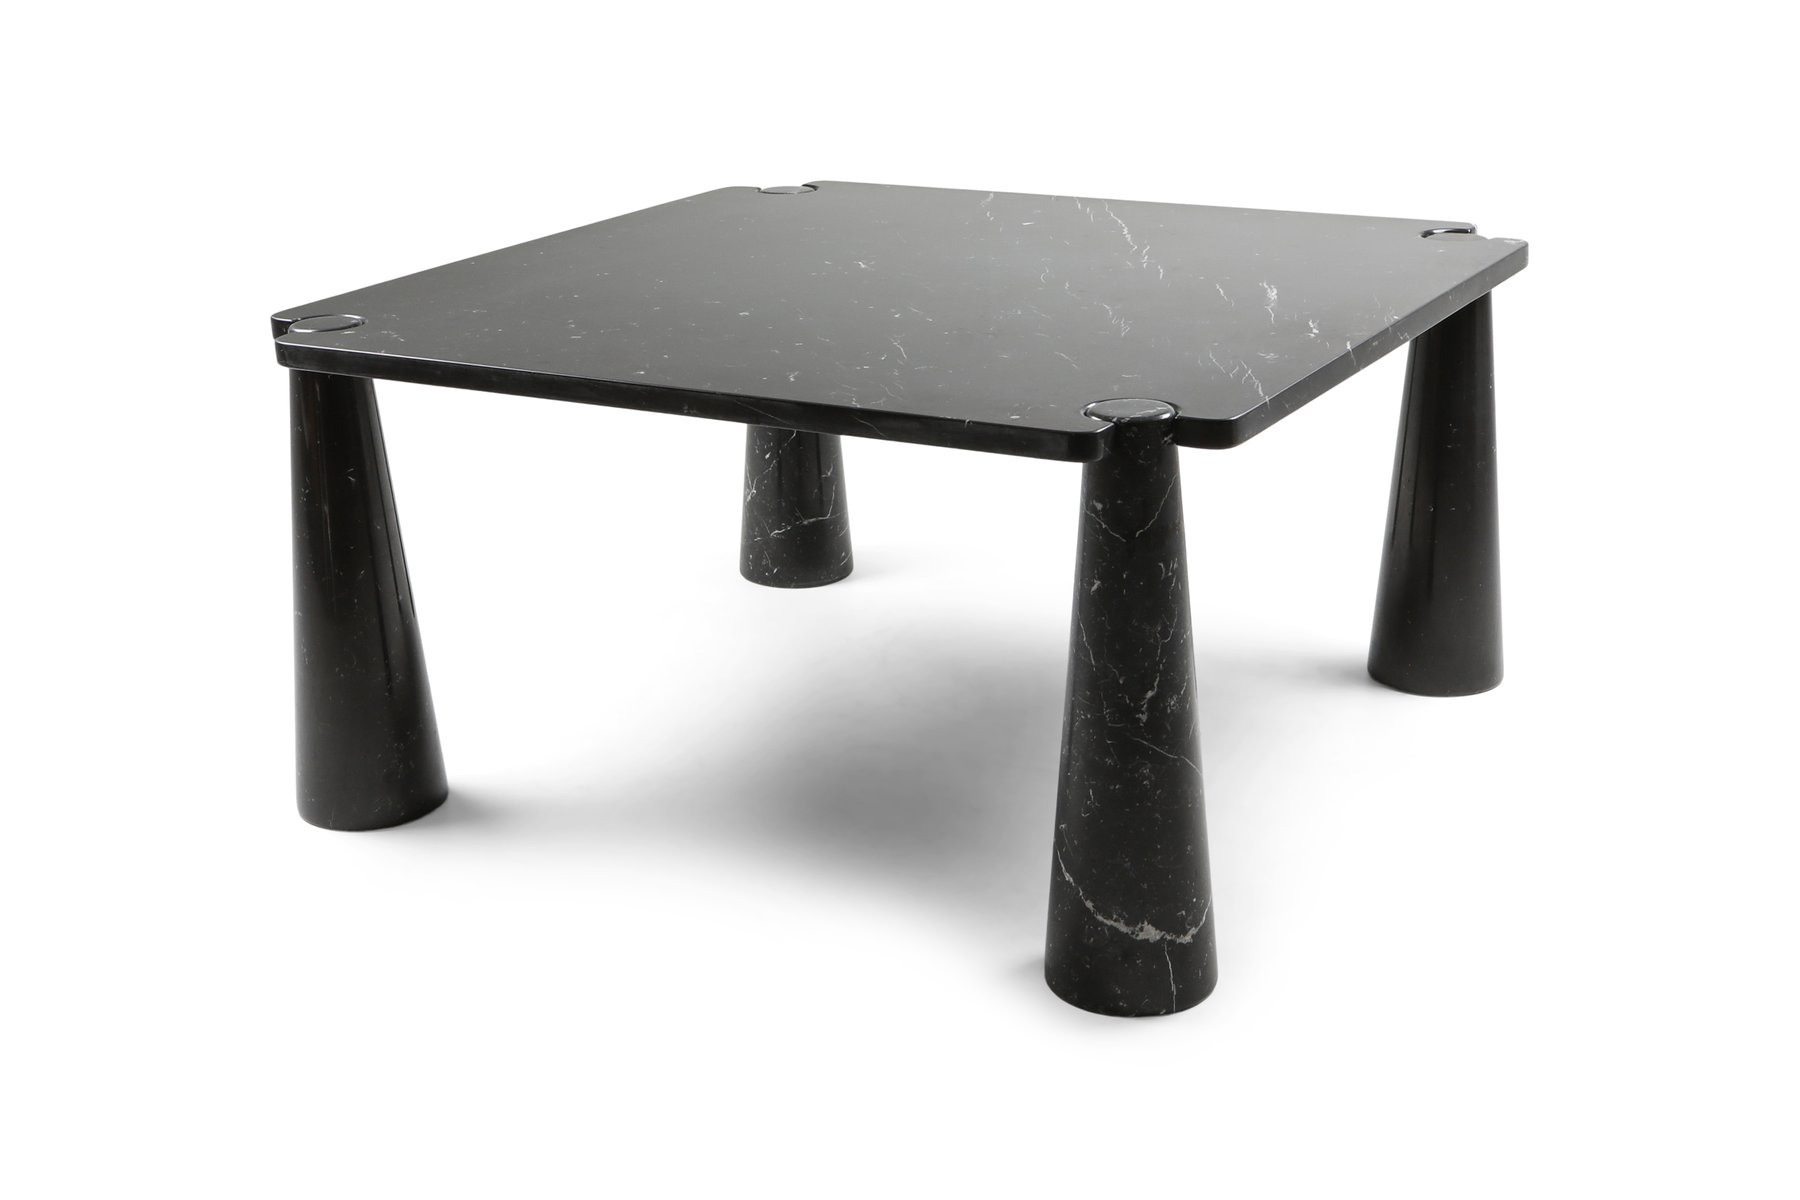 Marble Dining Table By Angelo Mangiarotti For Skipper 1970s For Sale At Pamono